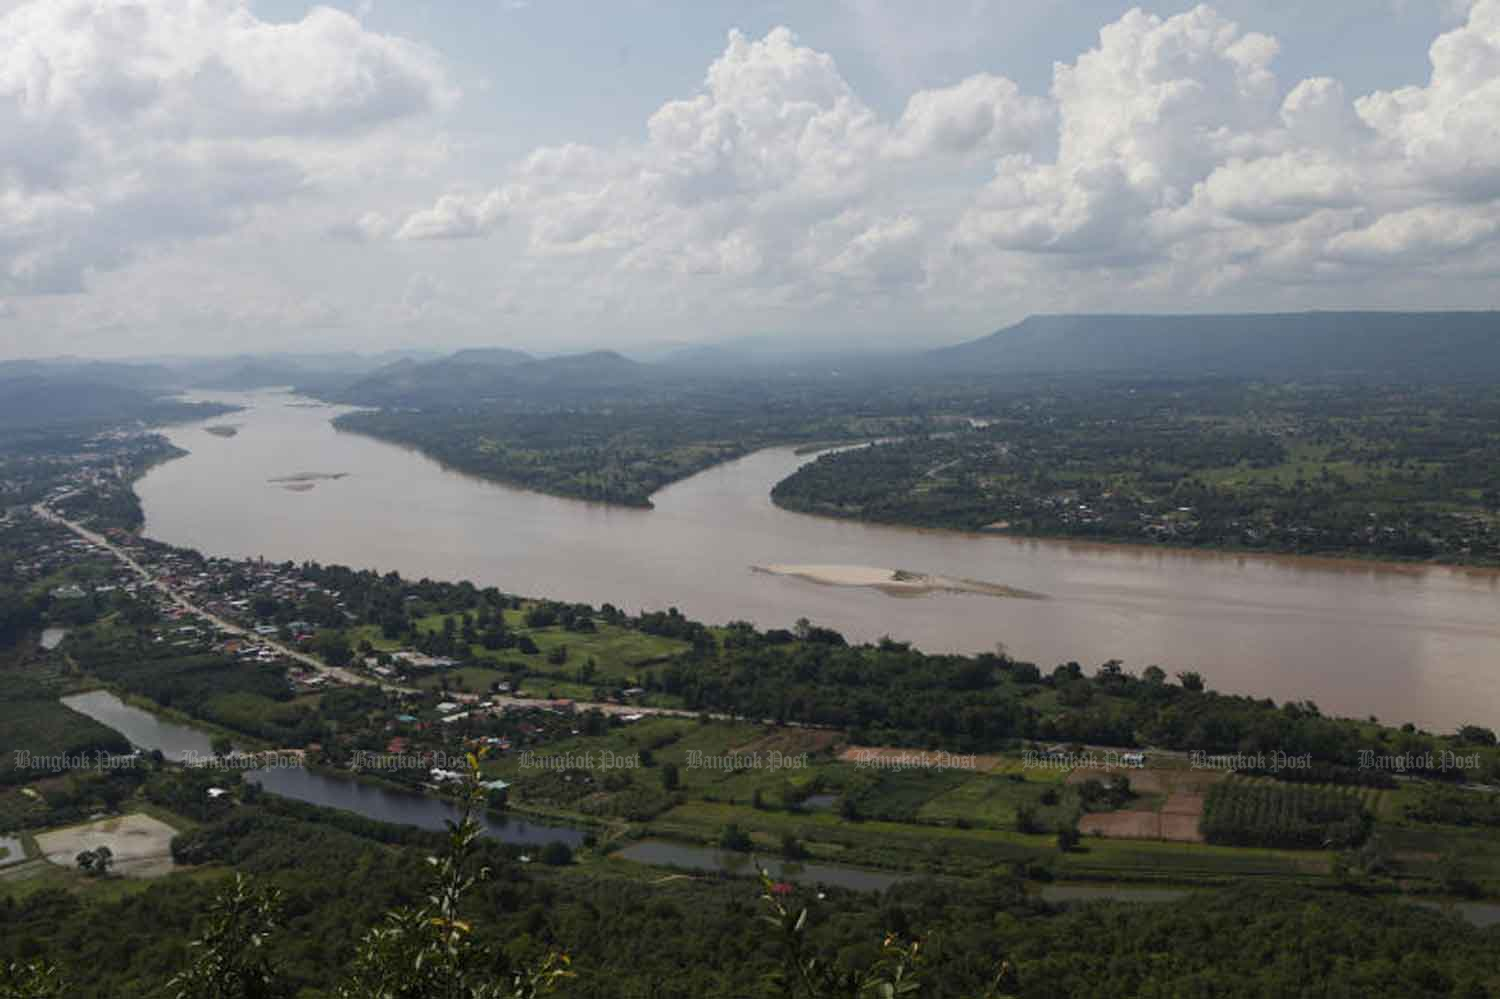 Sandbars can be seen on the Mekong River in tambon Pha Taem in Nong Khai, across from Laos. (Photo by Nutthawat Wicheanbut)